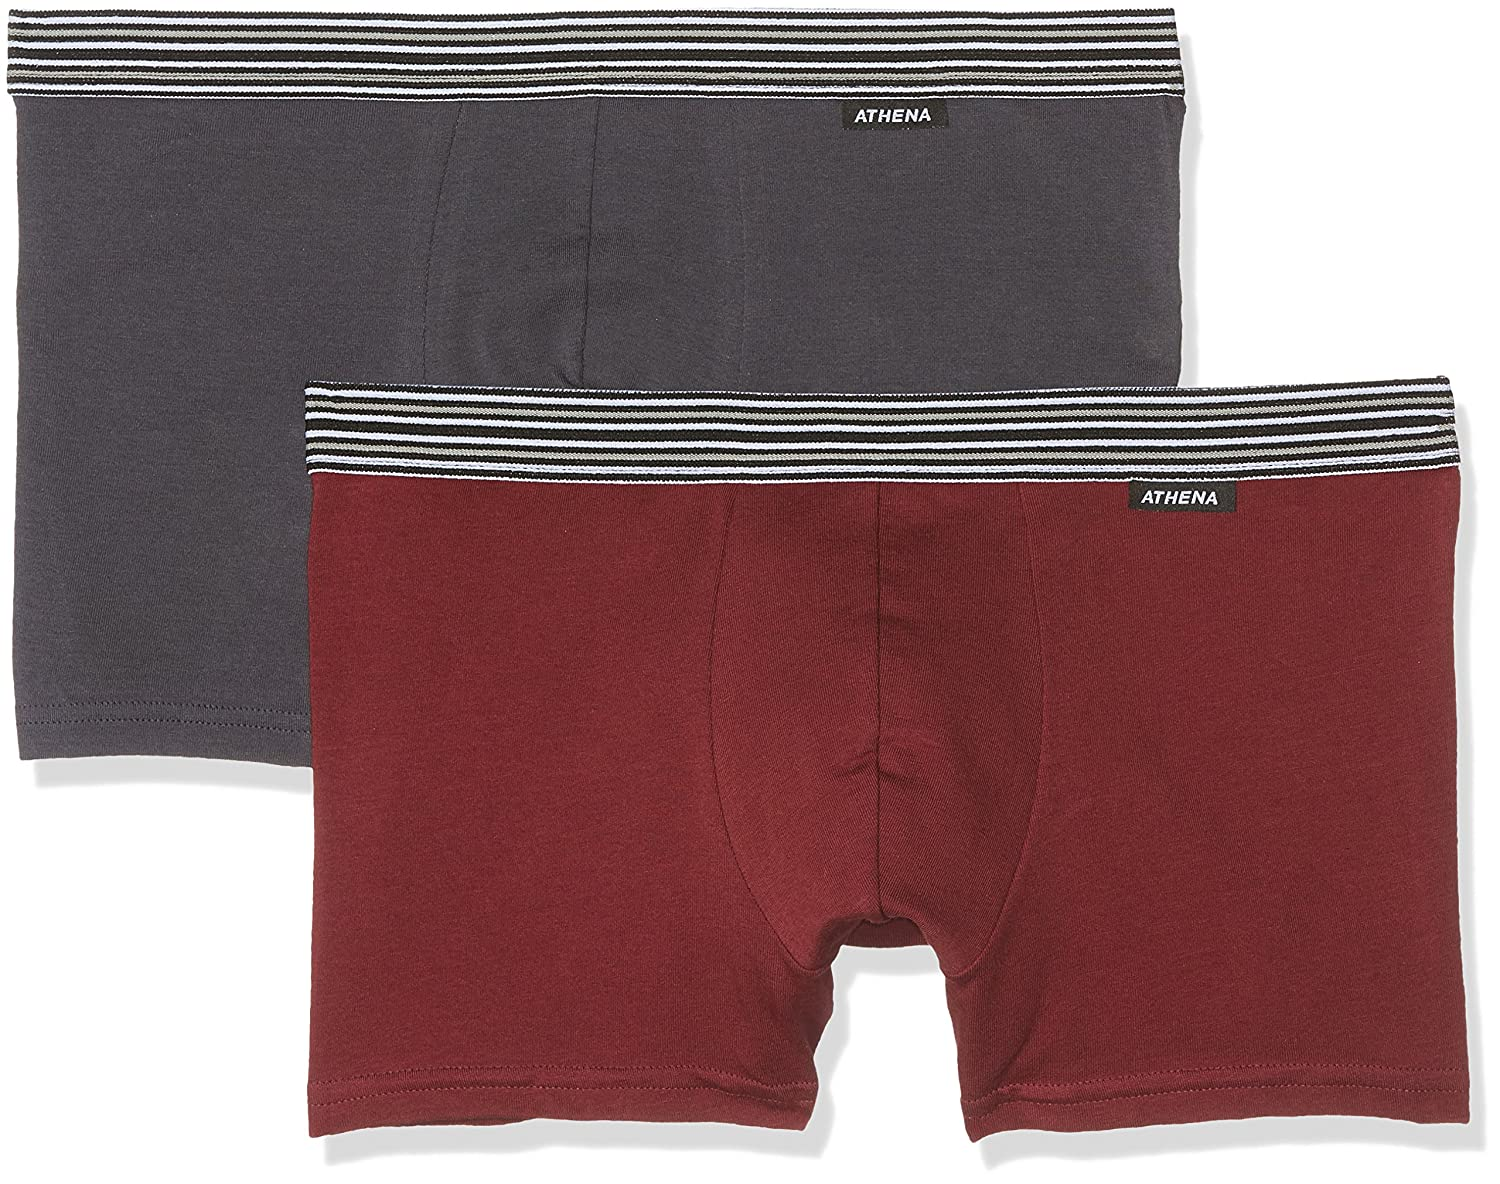 Cheap Price Outlet Cheap 100% Authentic Mens Duo Choc Boy Short Pack of 2 Athéna cqSAe